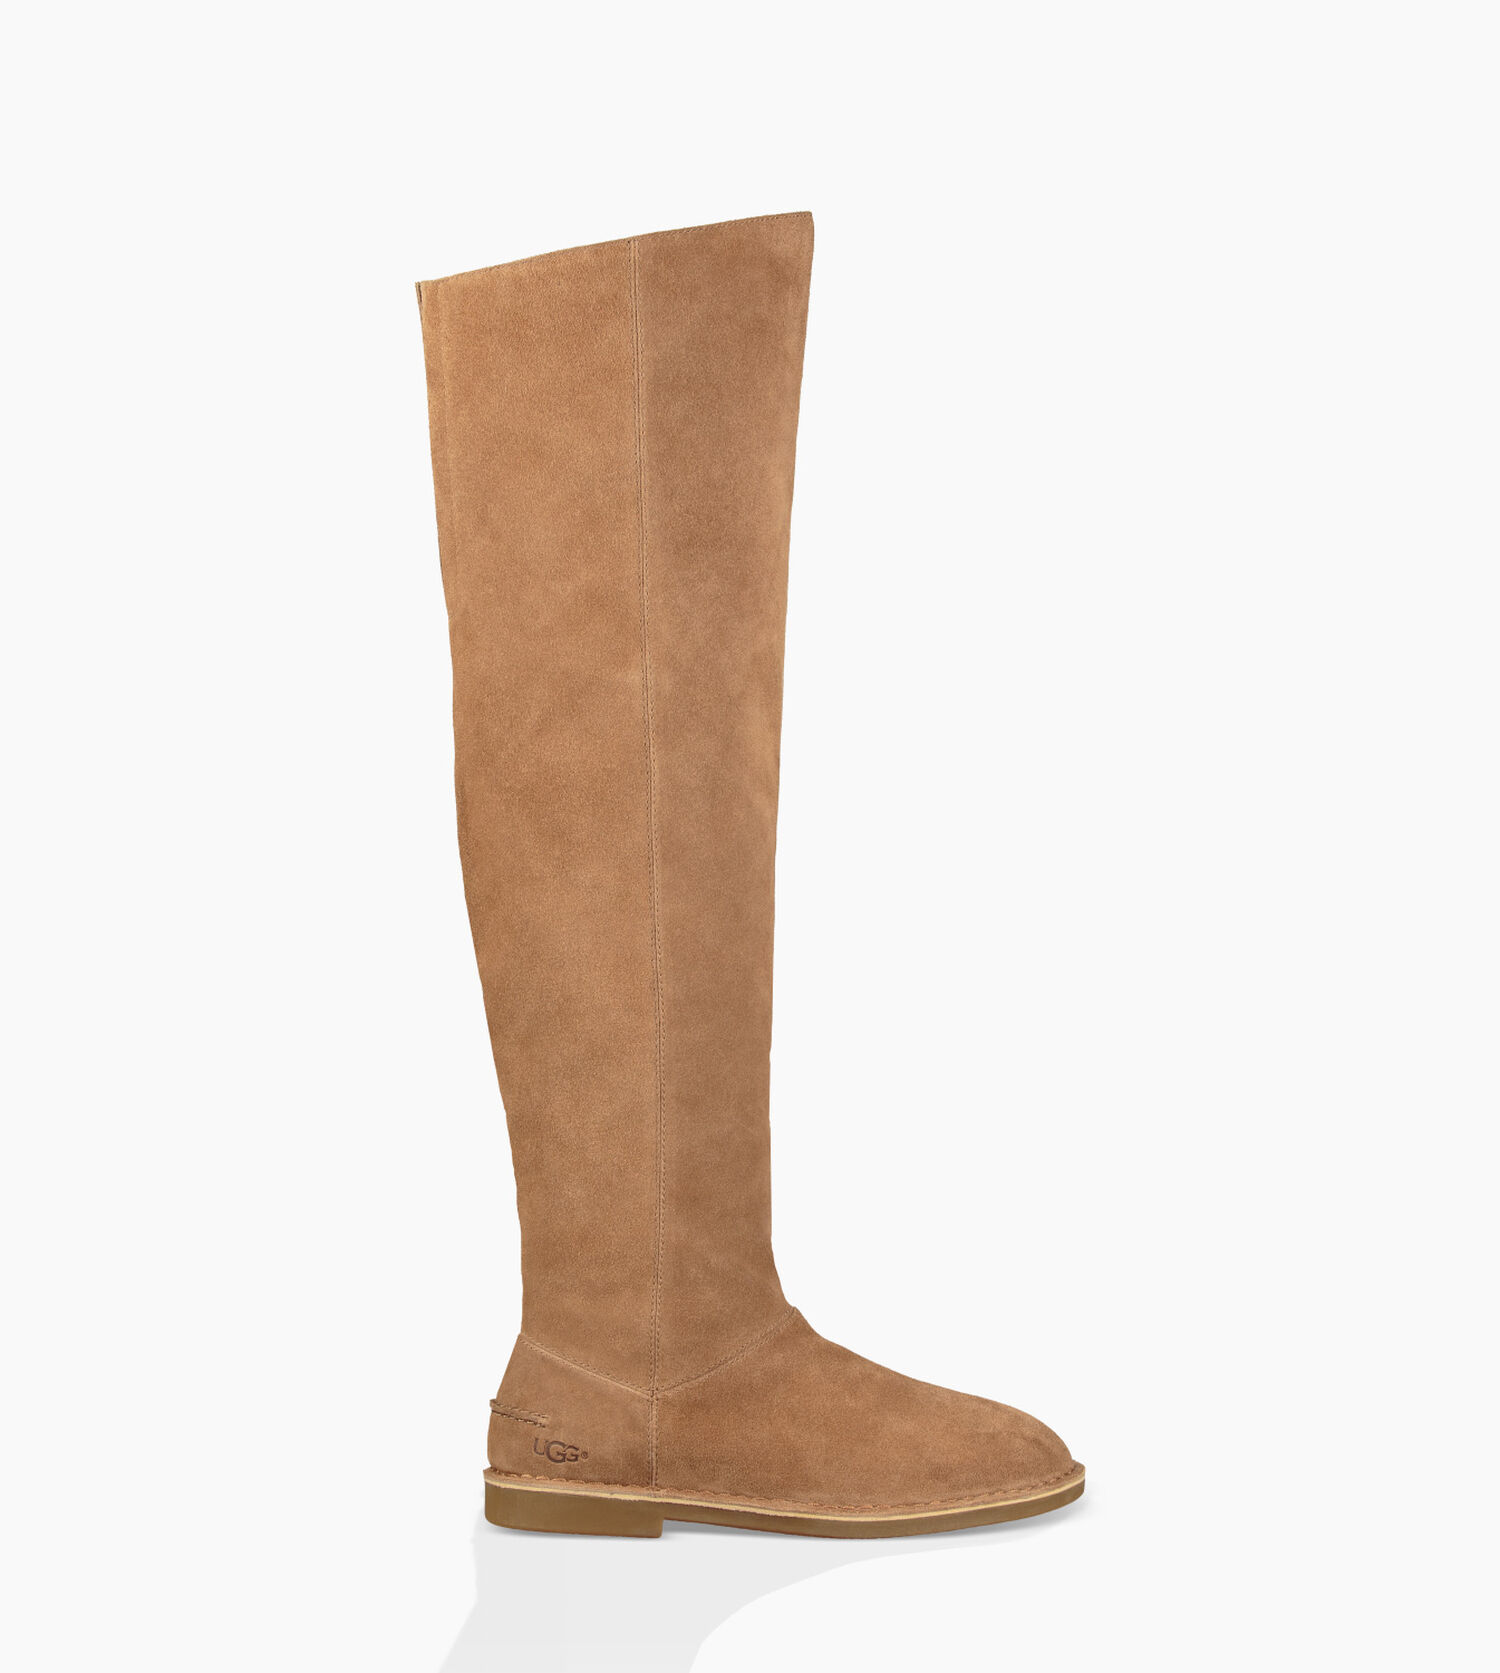 90089831042 Zoom Loma Over-the-Knee Boot - Image 1 of 6